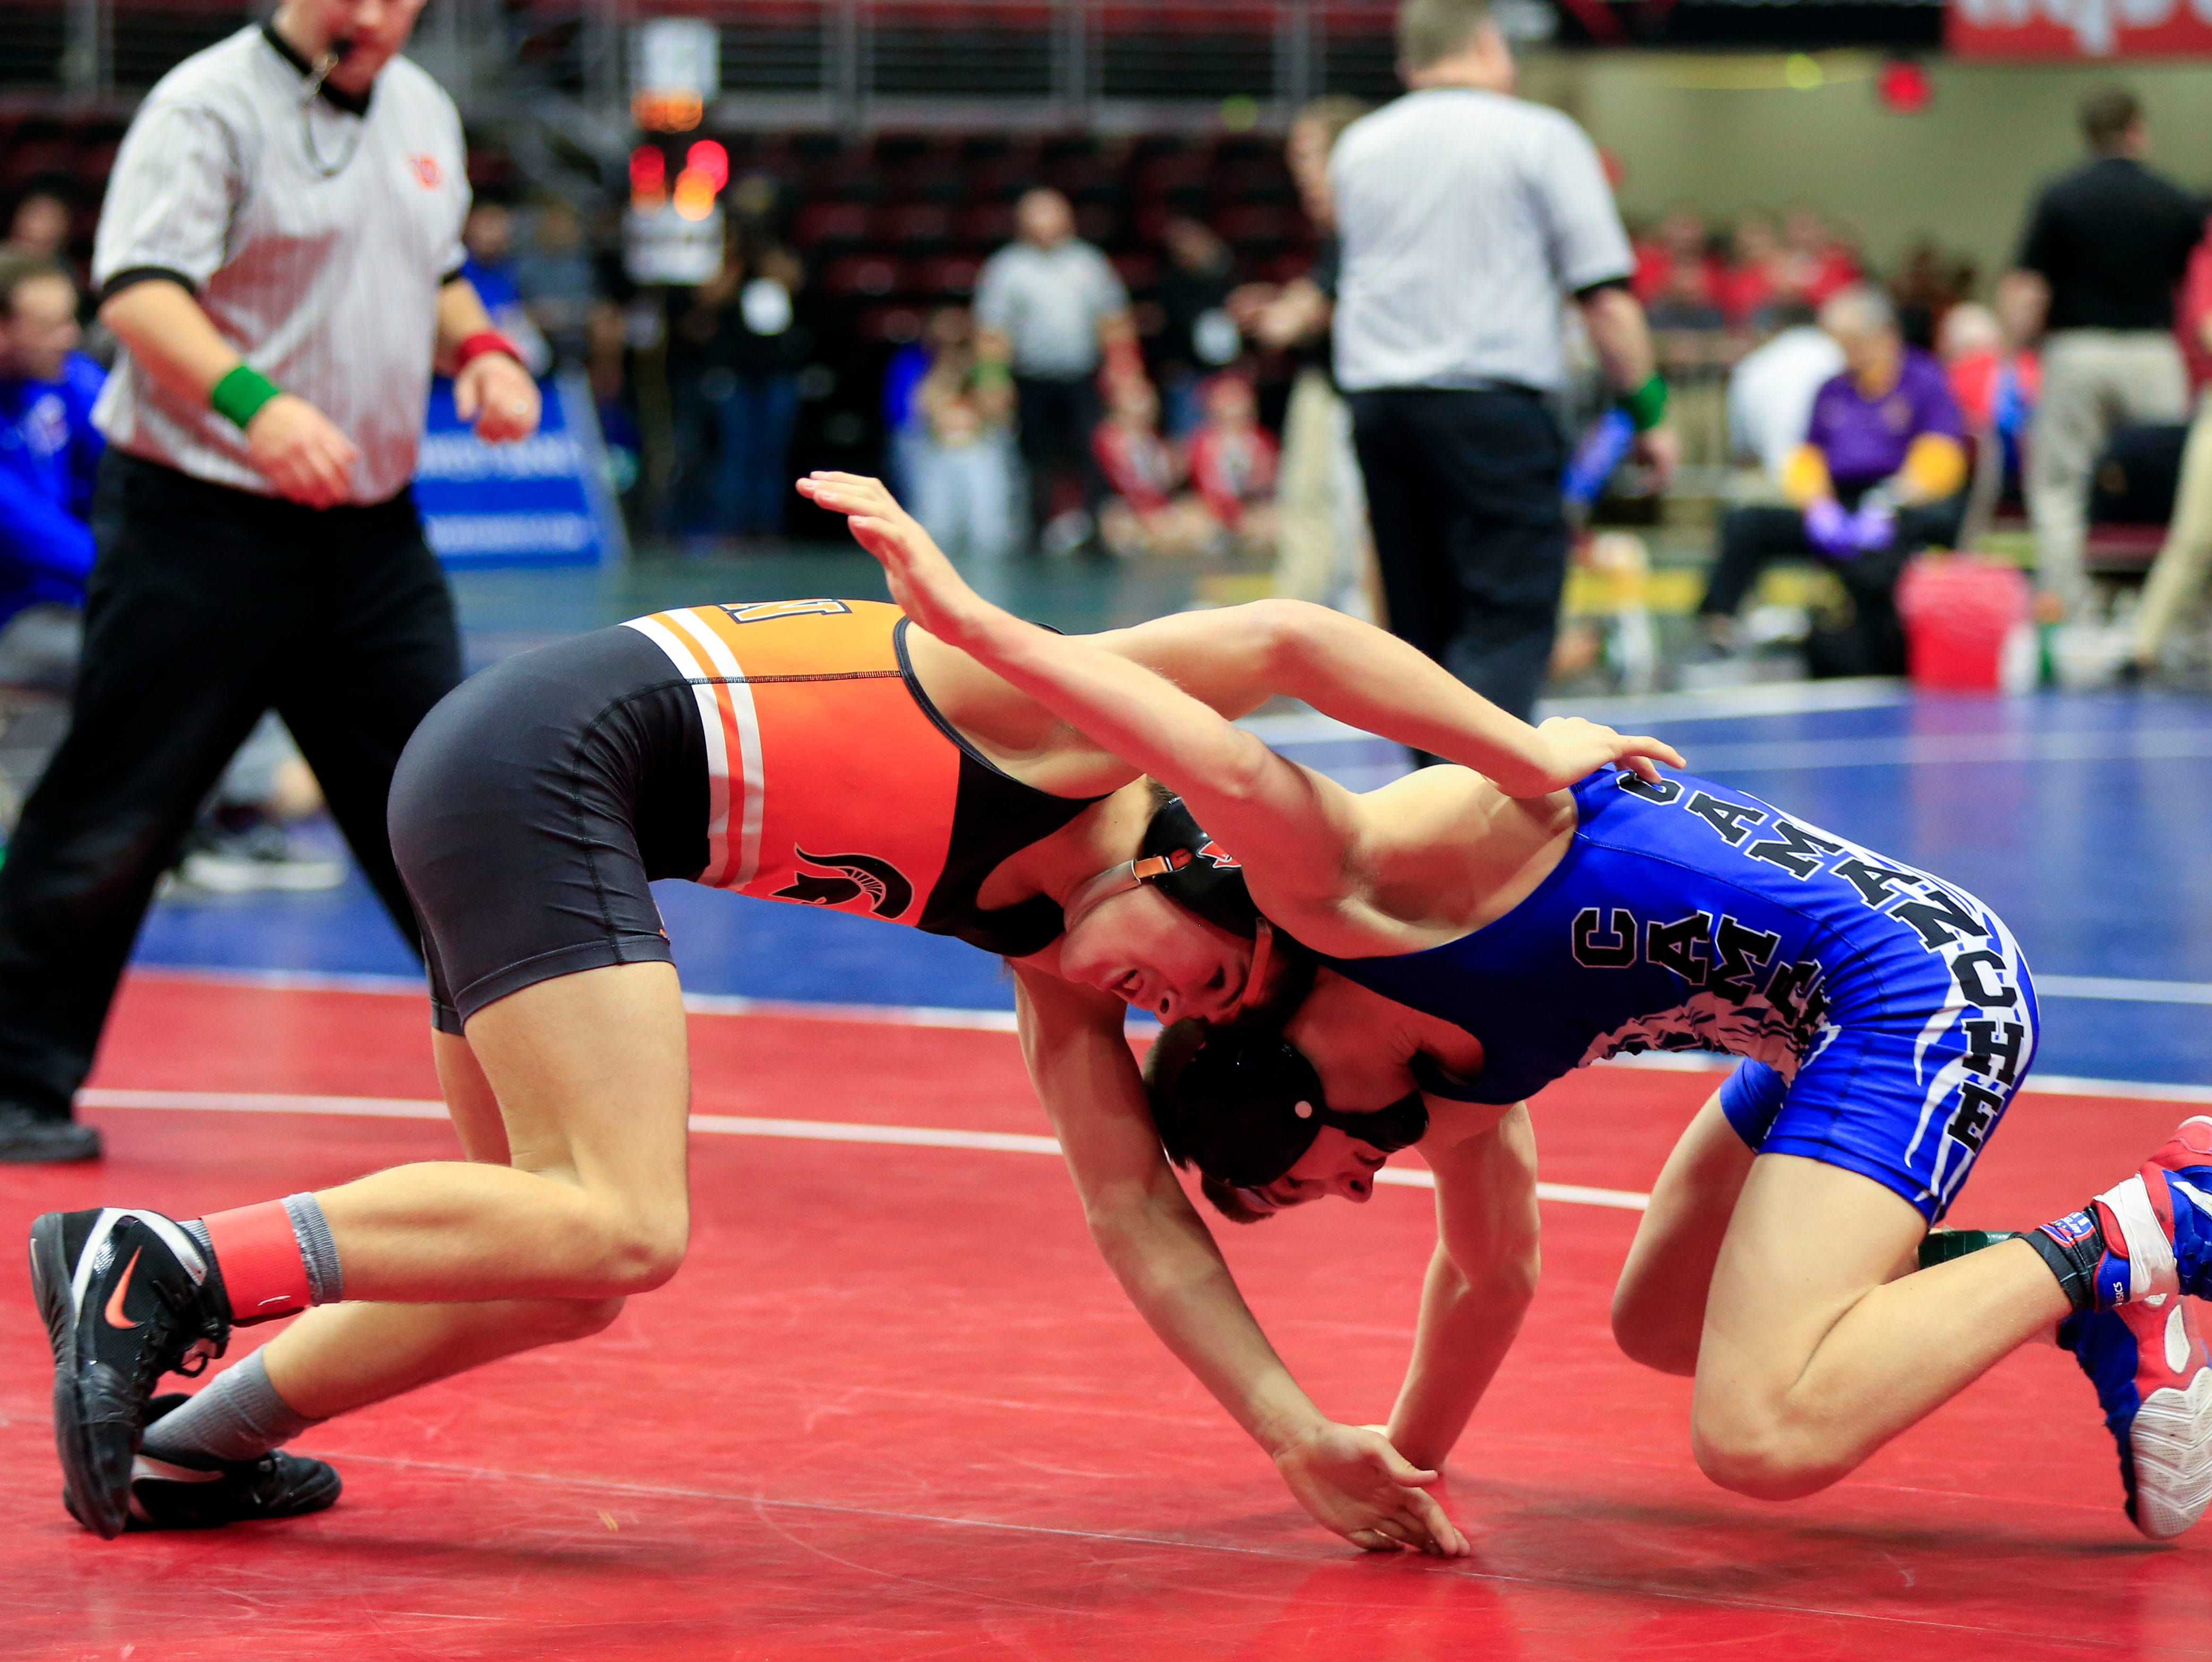 Hayden Taylor of Solon defeats Eric Kinkaid of Camanche during a 126 Lb 2A quarterfinal match at the state wrestling tournament Friday, Feb. 15, 2019.